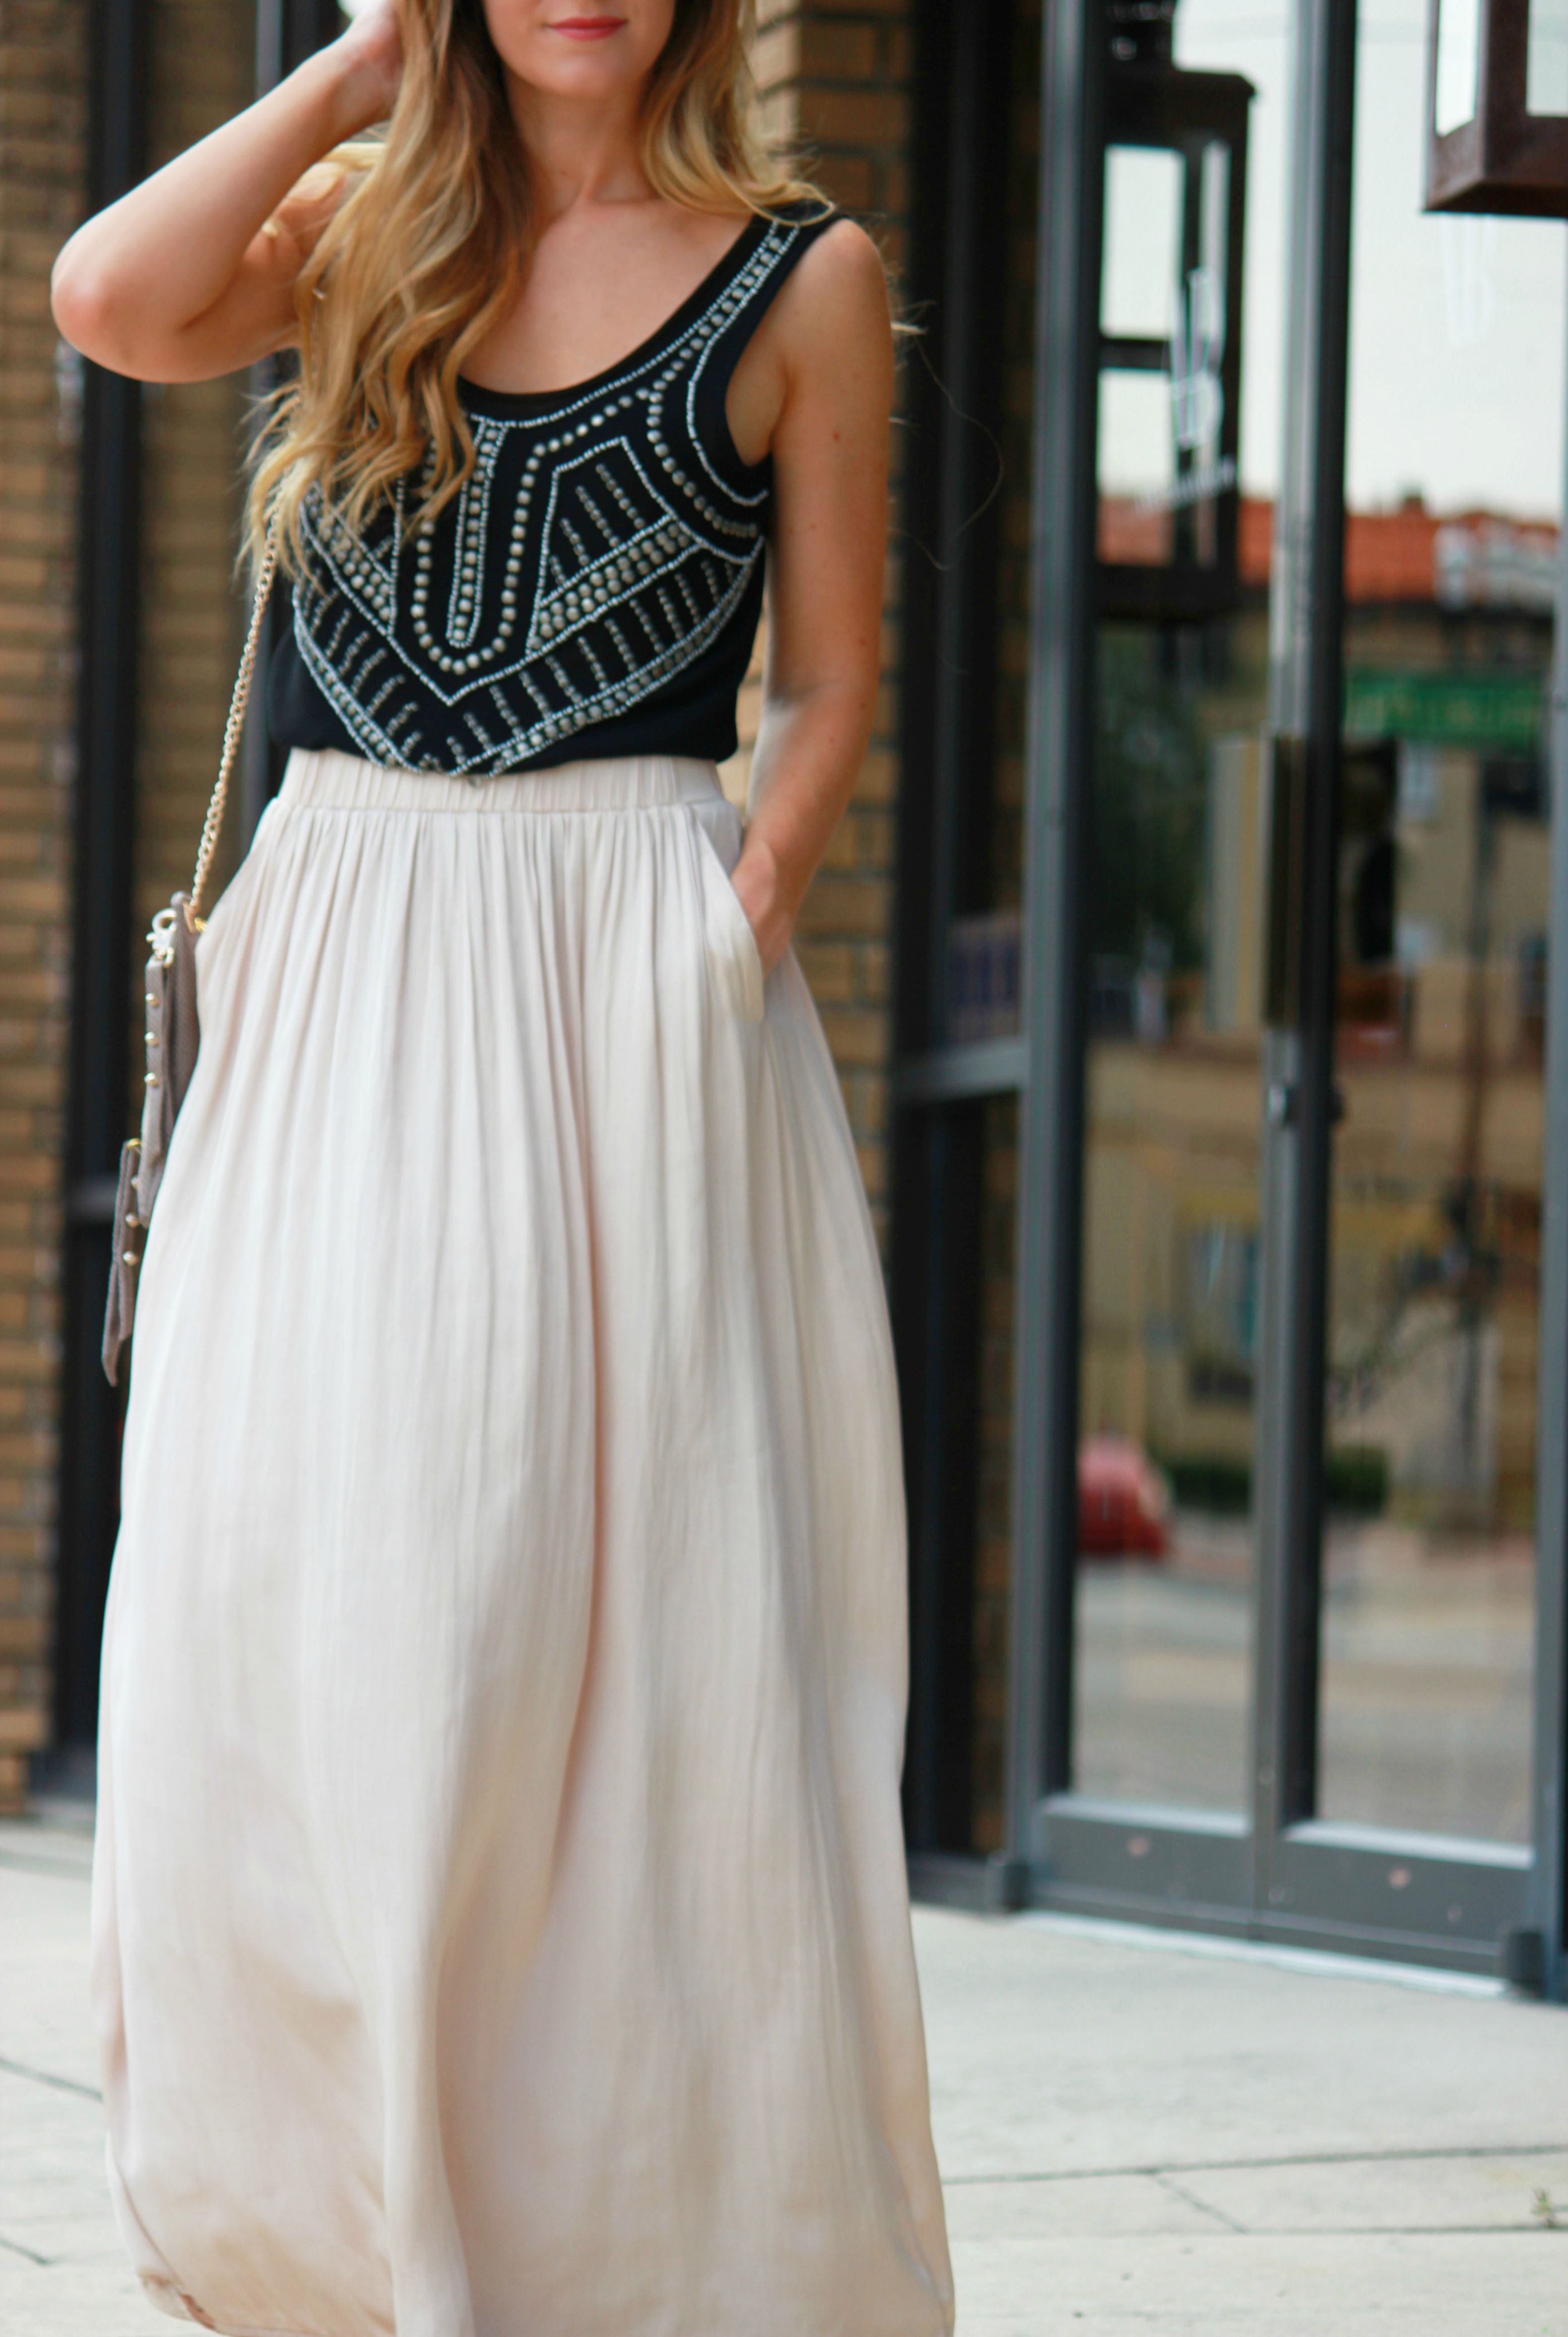 h&m skirt, Satin maxi, embelished top, urban outfitter top, urban decay bag, crossbody bag, gianni bini sandals, sold sandals, casual summer outfit, gold maxi